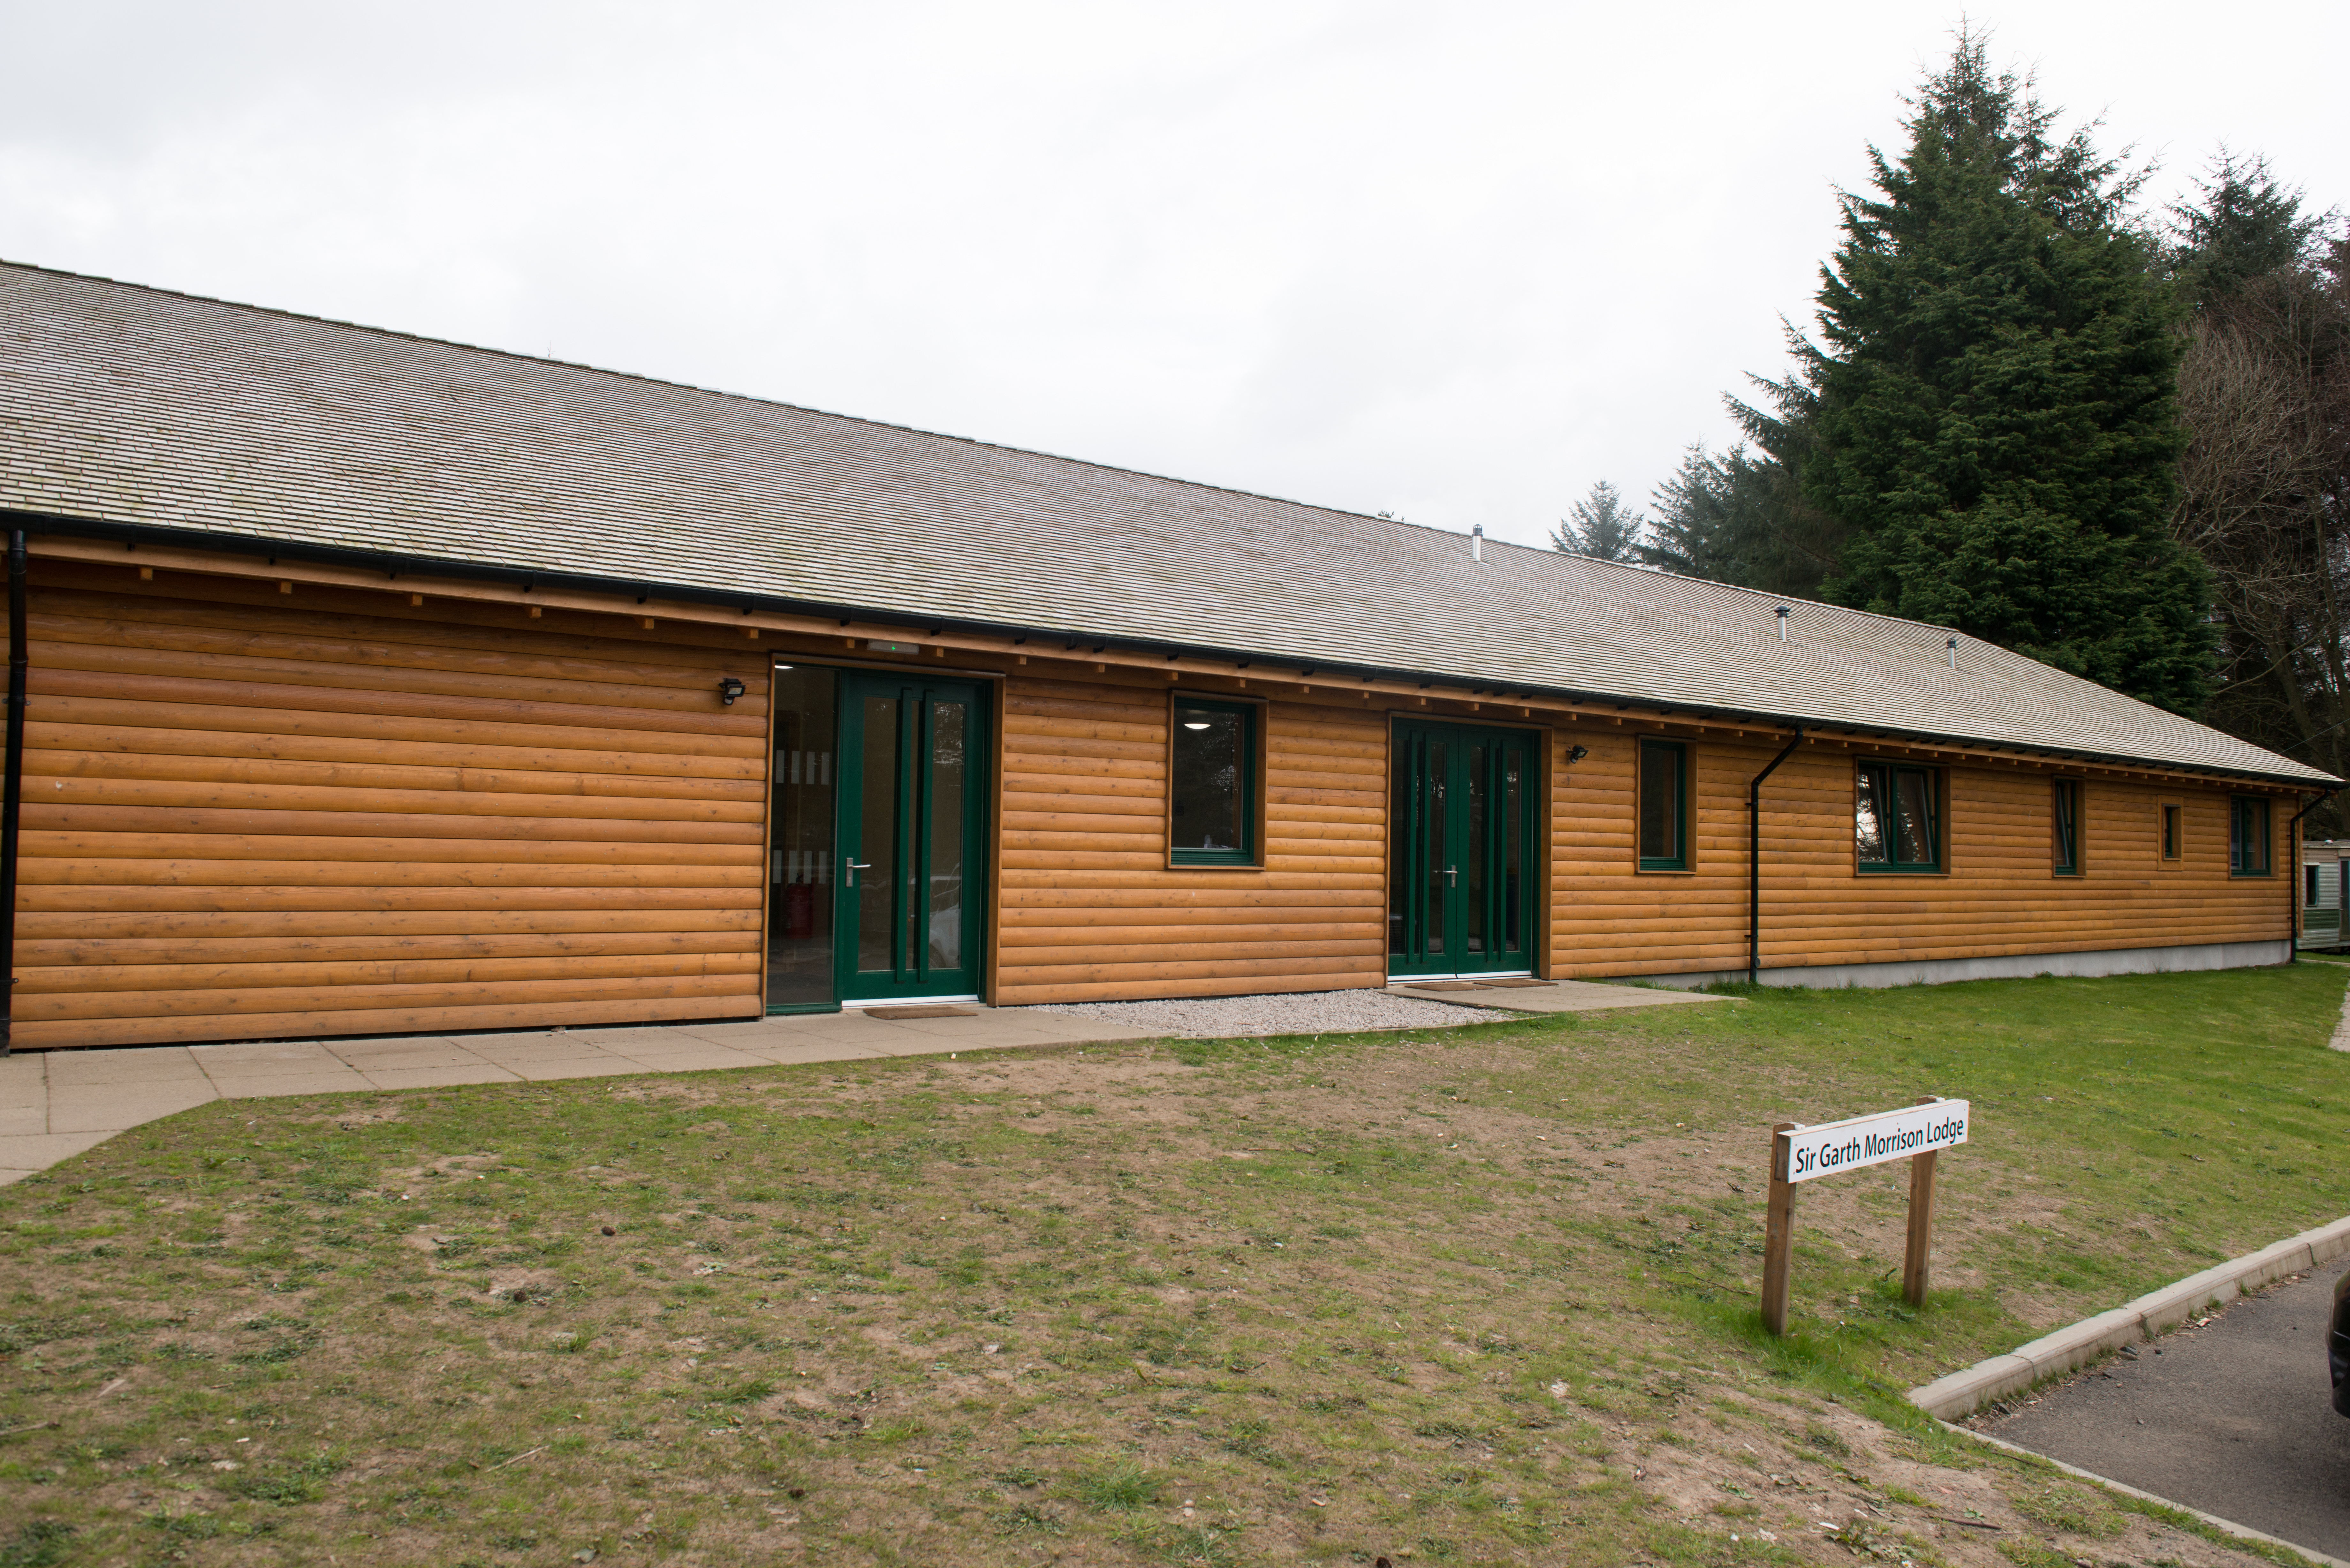 Garth Morrison Lodge